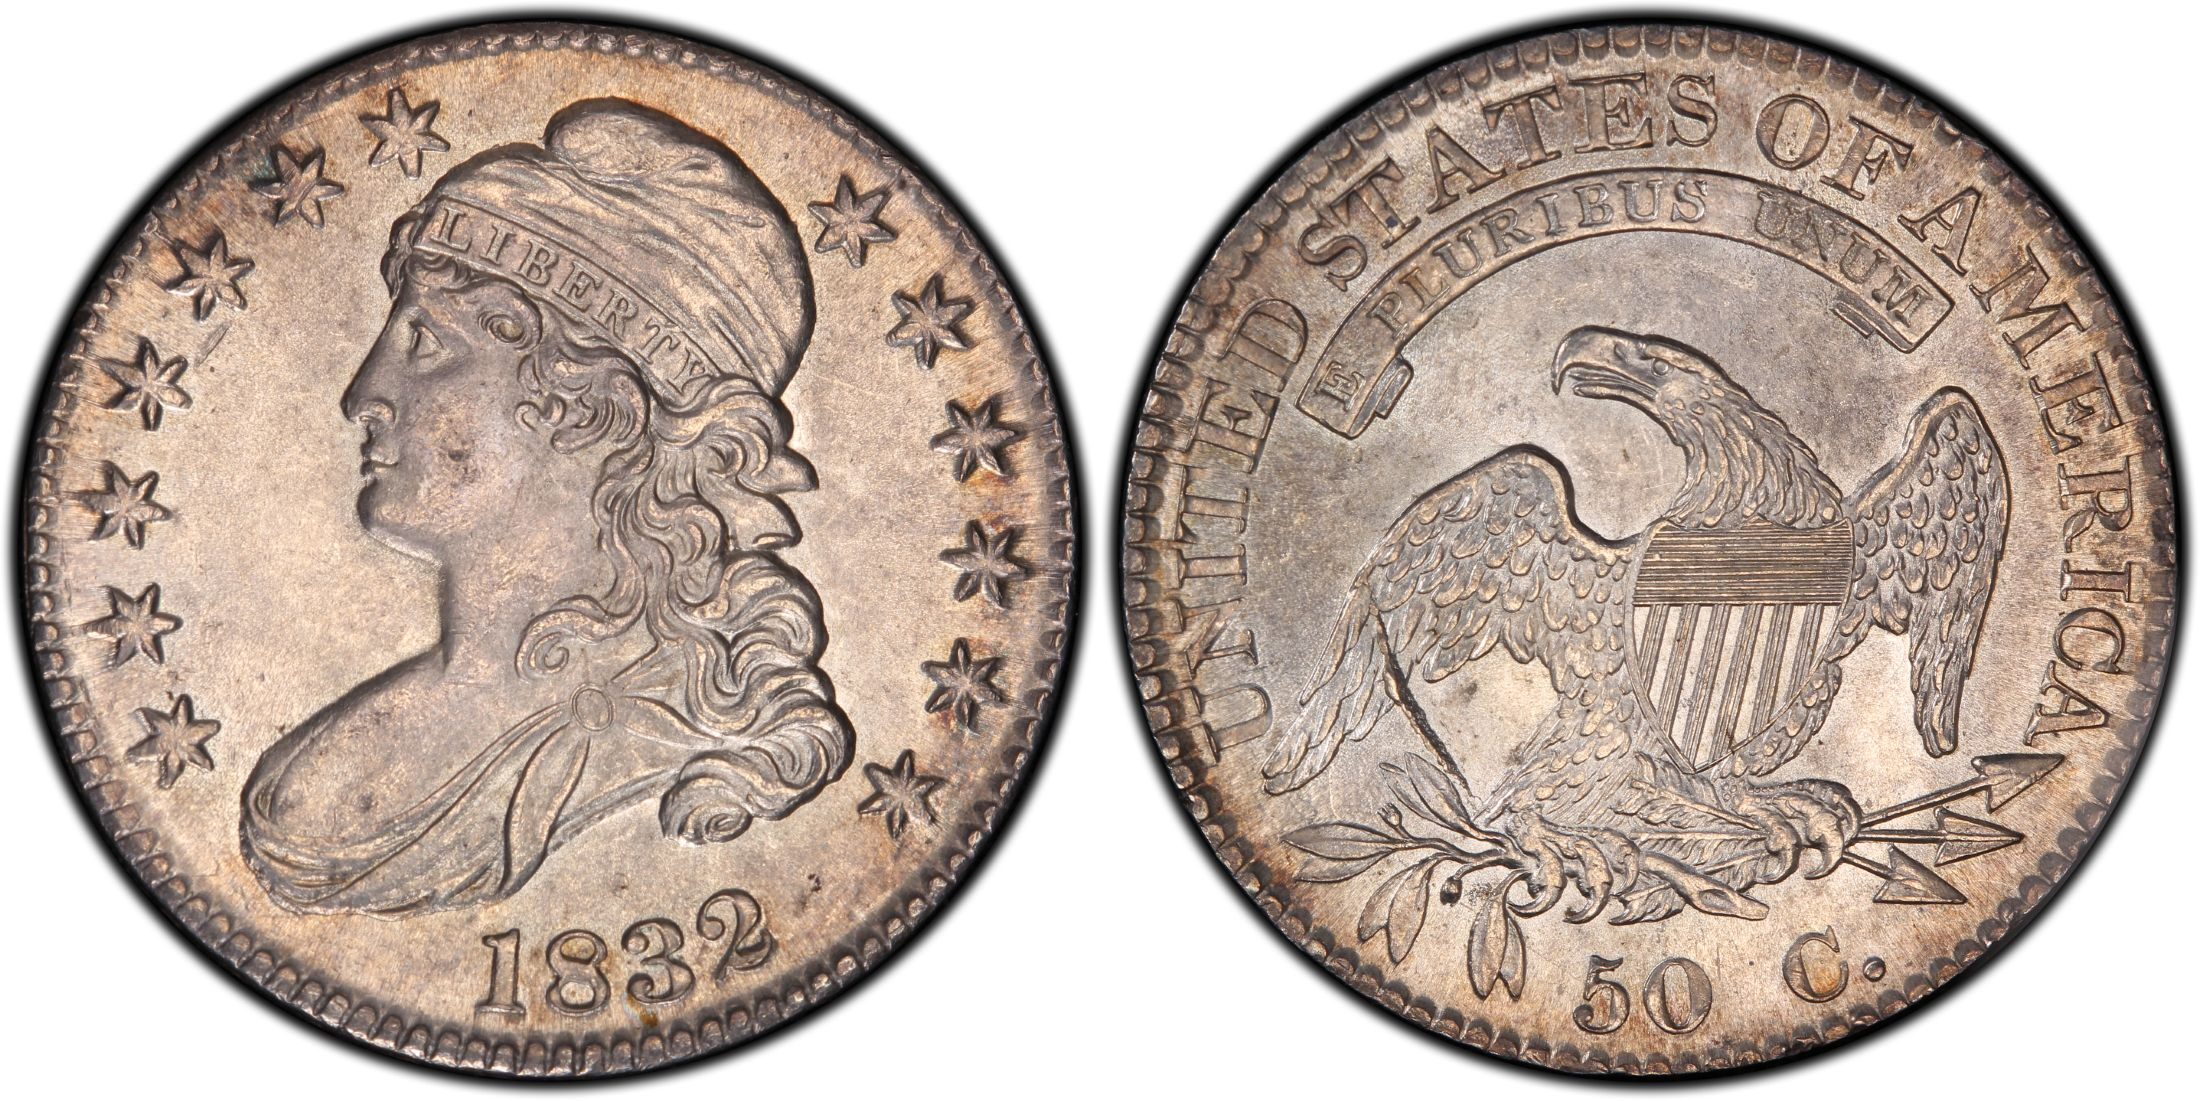 Us Half Dollar Or Fifty Cent Coin From 1832 Usa Fifty